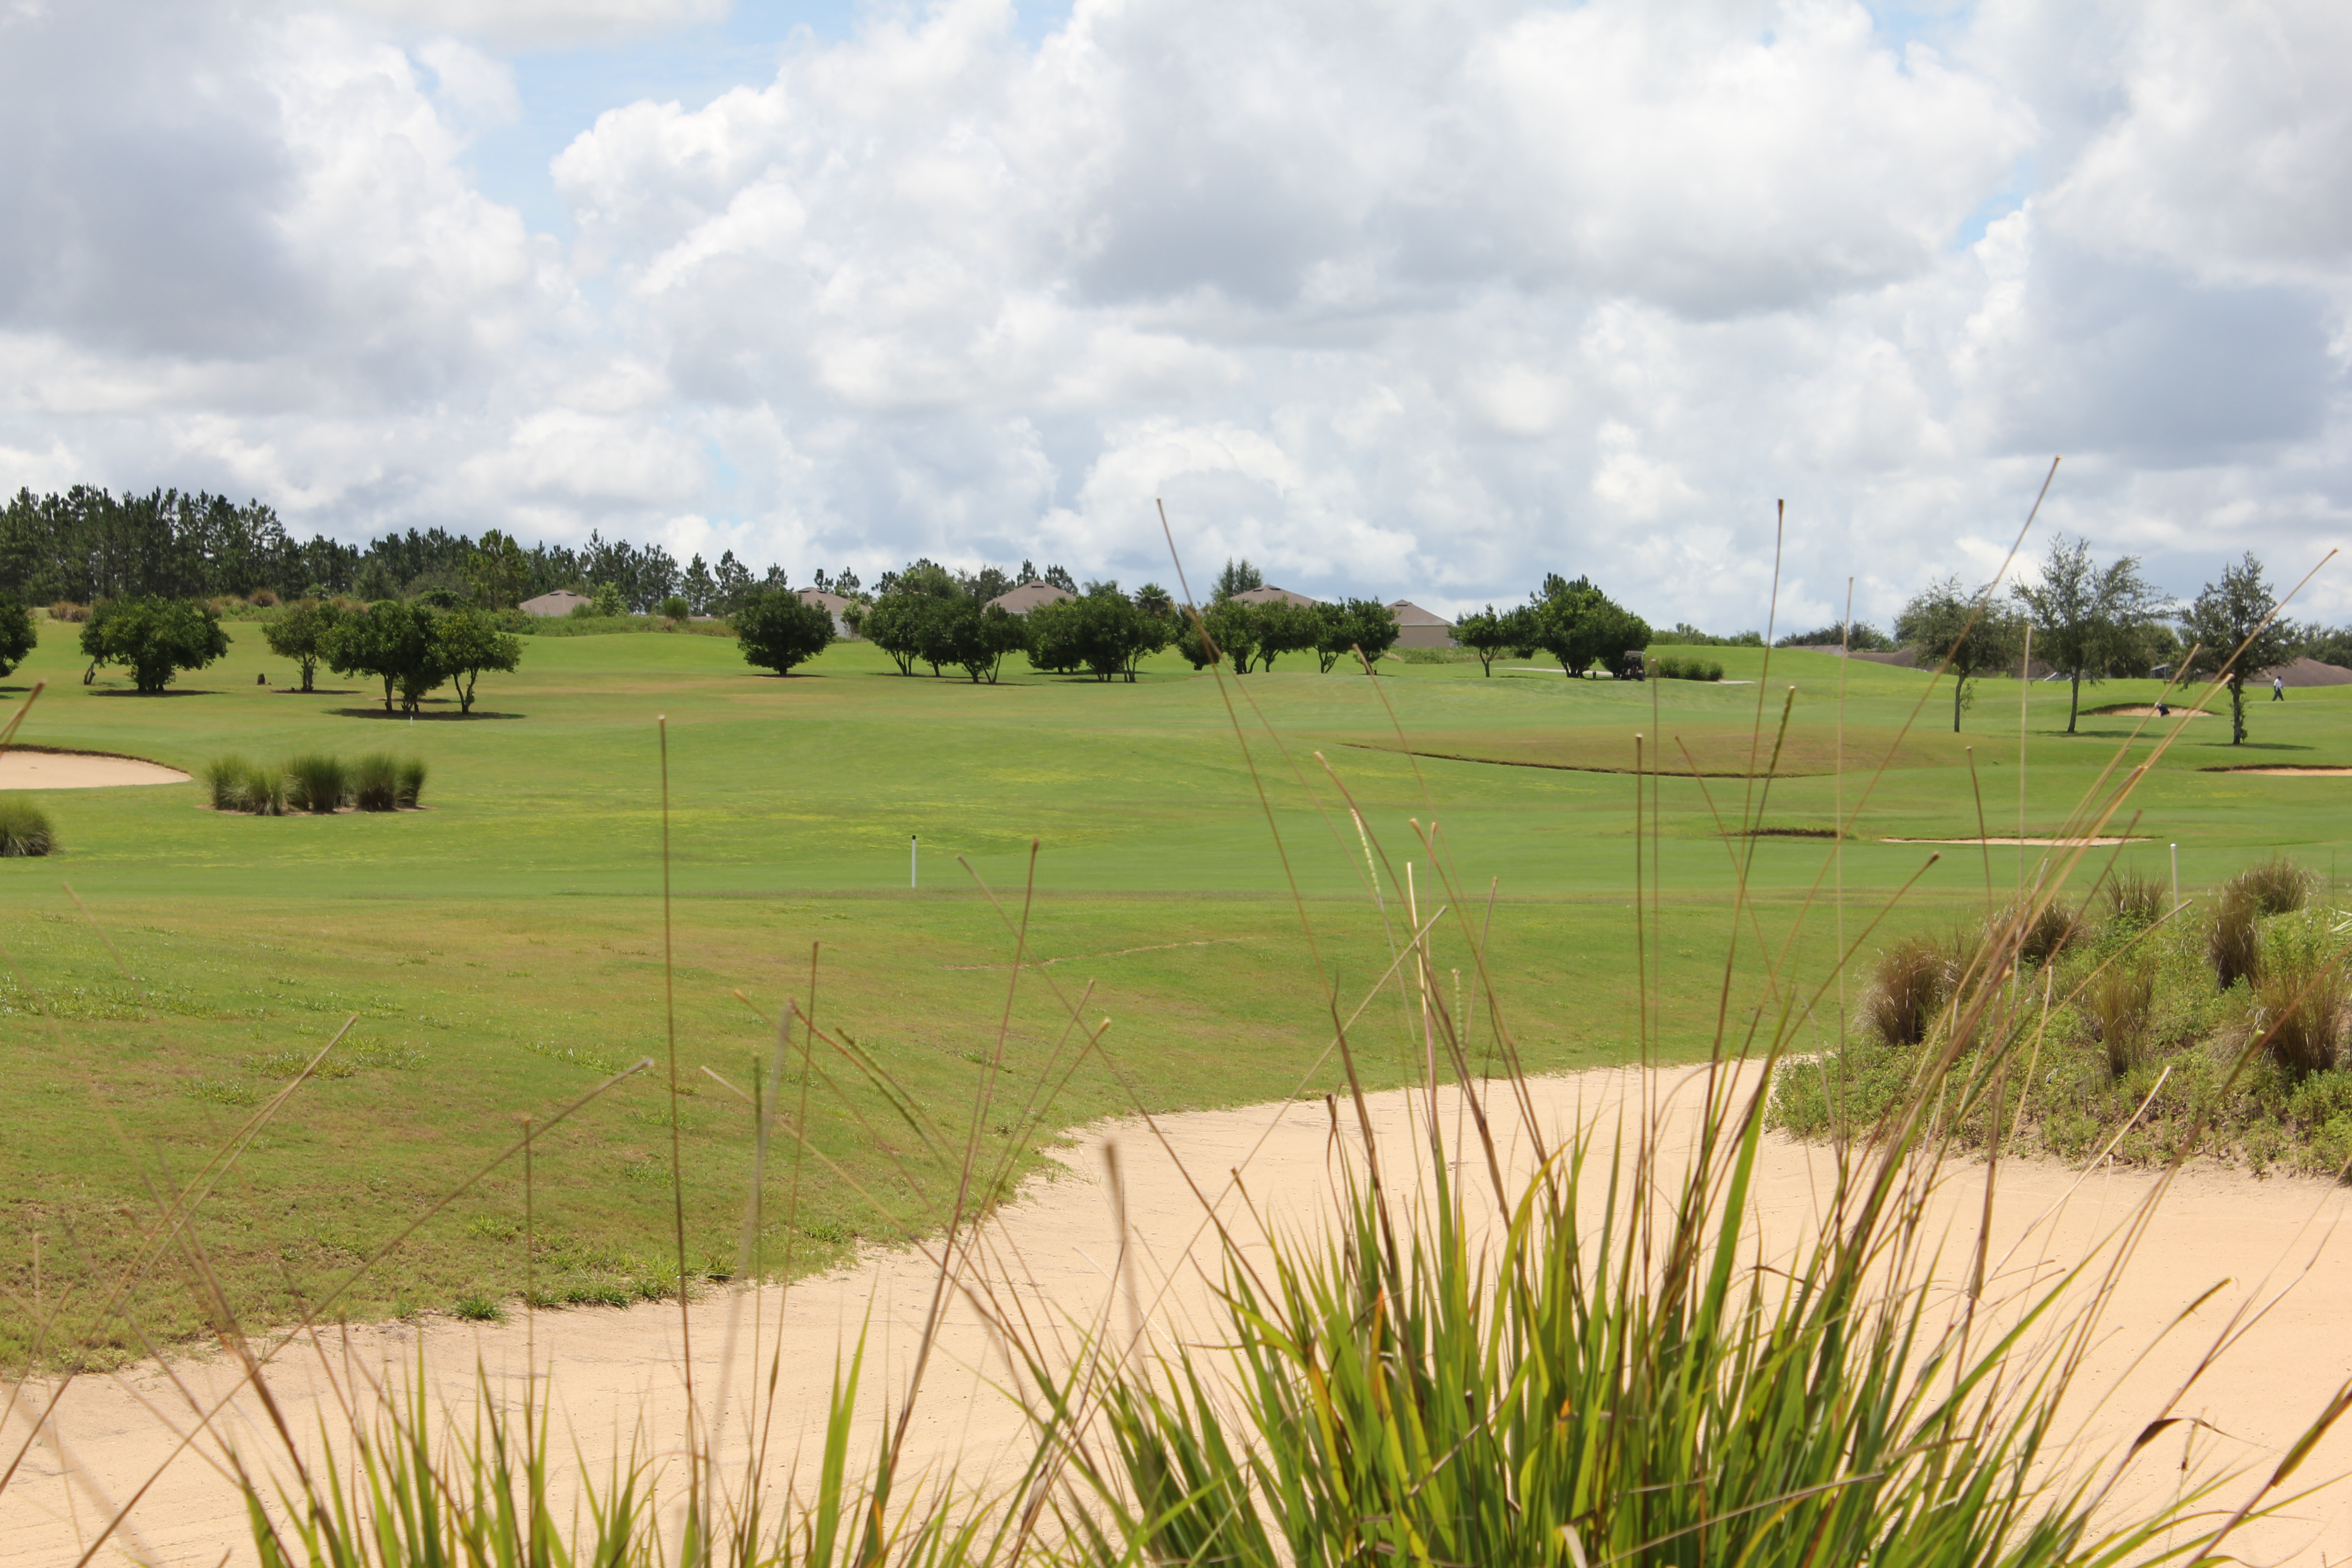 A view of the Highlands Reserve Golf Club